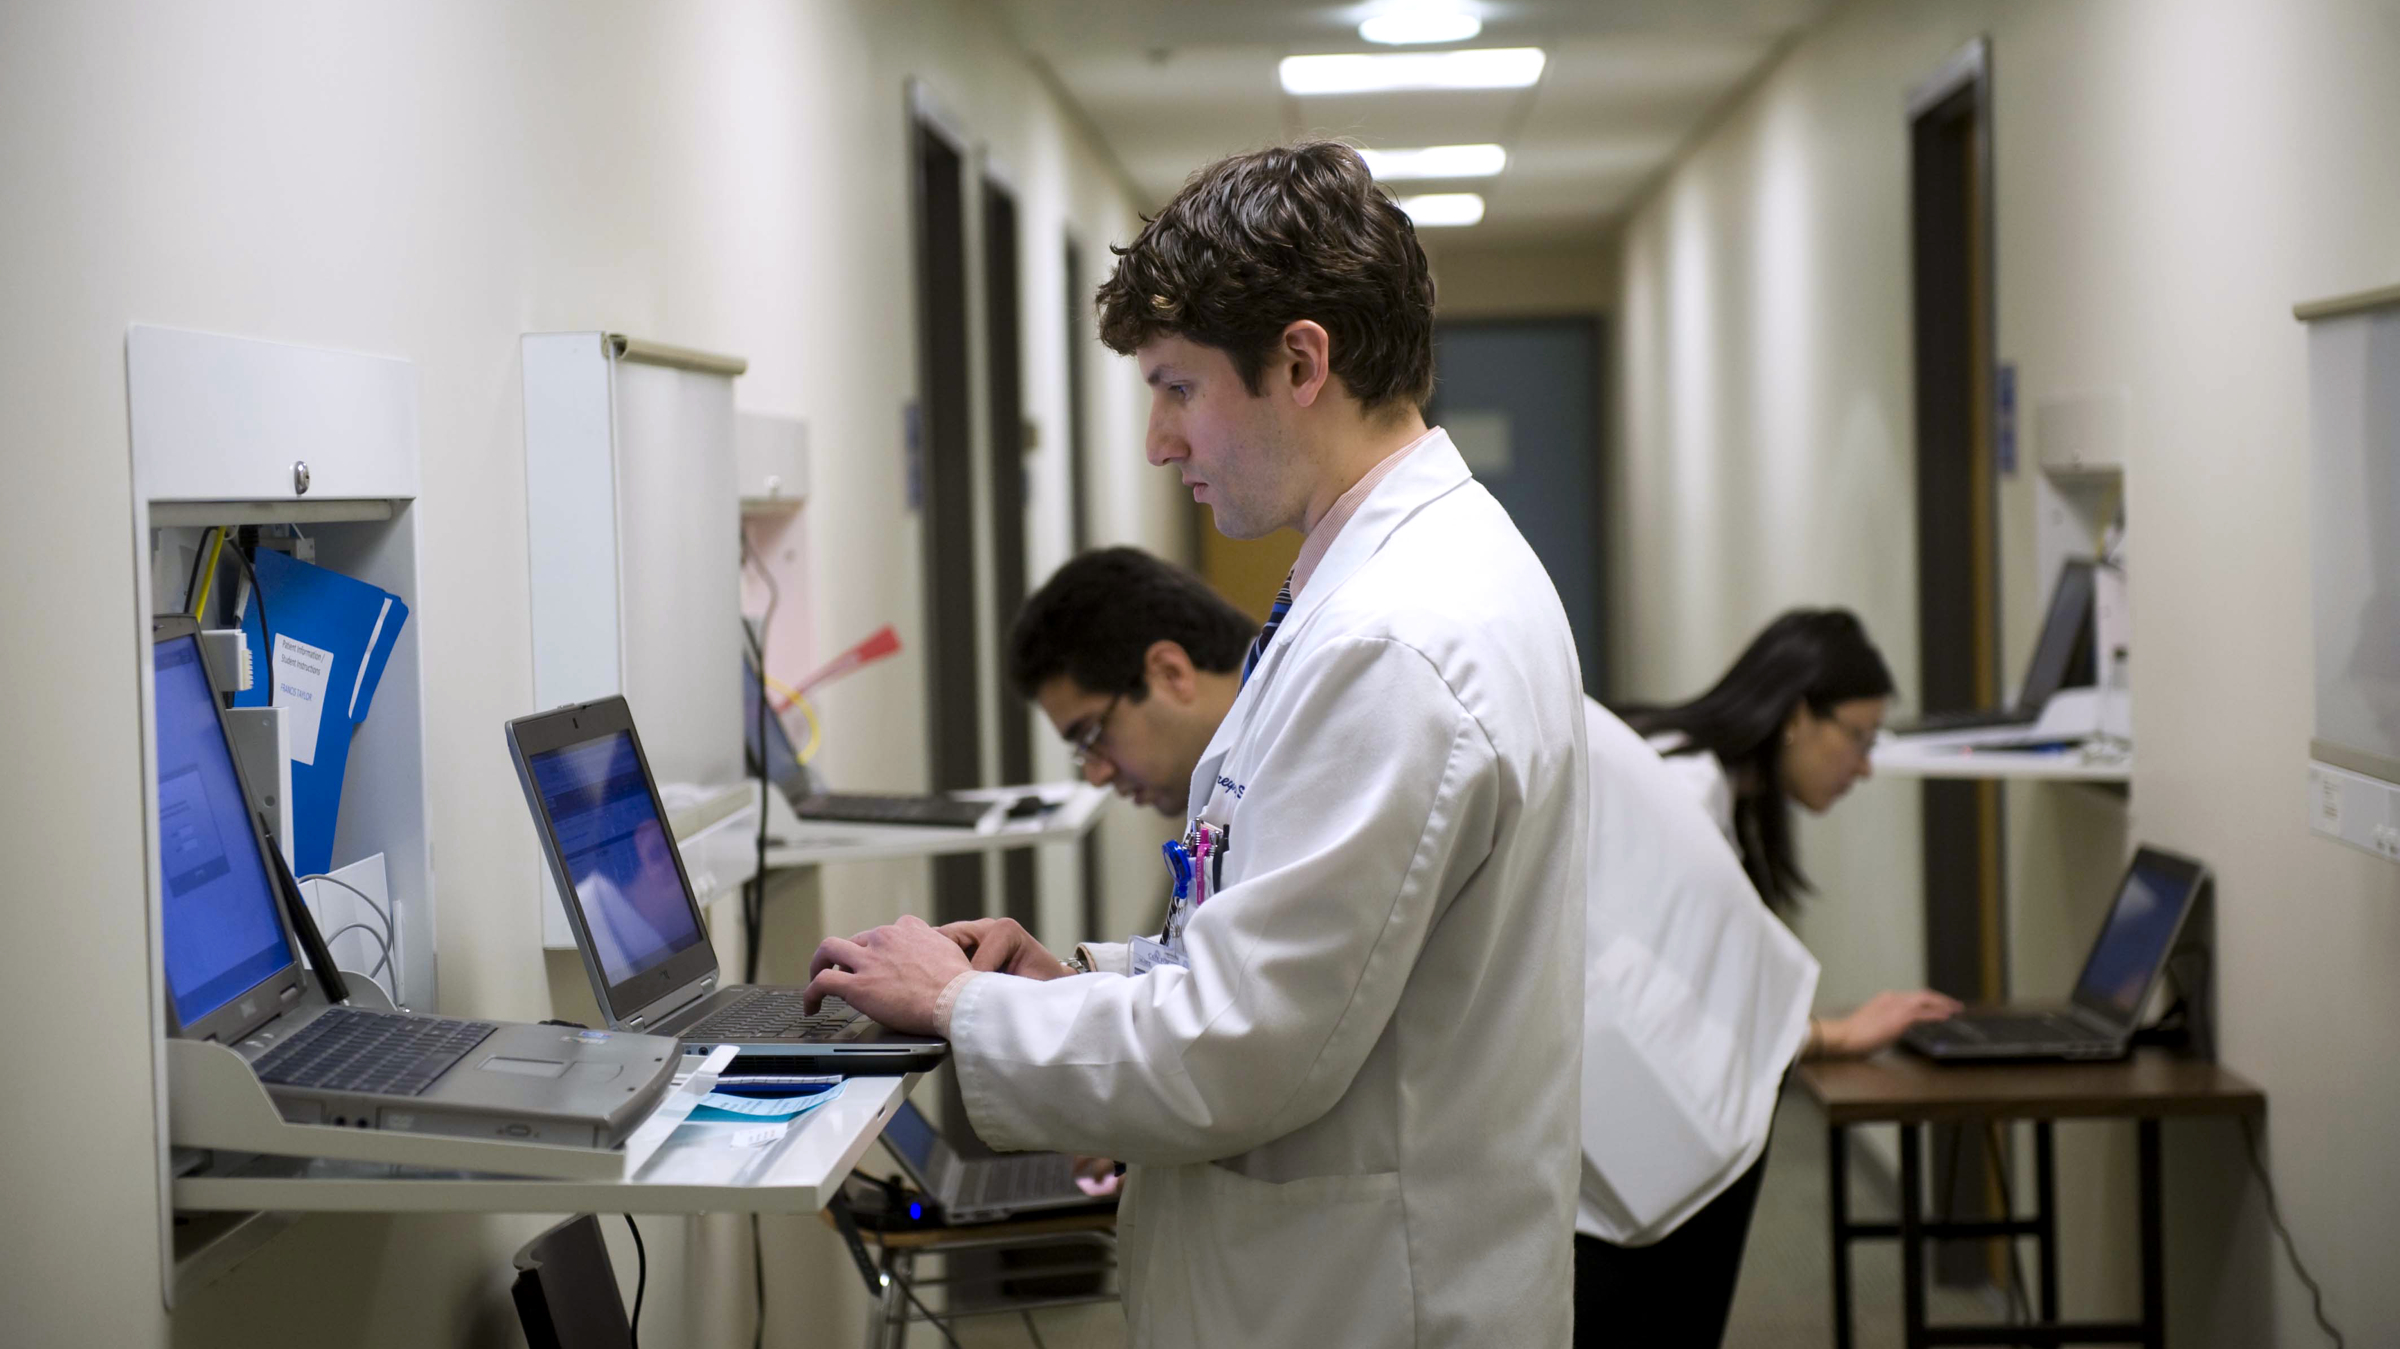 Gregory Shumer, center, Omer Shah, left, and Jasmine Zheng, all third-year Georgetown medical students, prepare to meet with a patient/actor in an exam room on the Georgetown Medical School campus in Washington, Friday, March 16, 2012.  The students were learning how to better integrate the computer in the exam room without losing the human touch. As the nation moves to paperless medicine, doctors are grappling with an awkward challenge: How do they tap the promise of computers, smartphones and iPads in the exam room without losing the human connection with their patients? Are the gadgets a boon, or a distraction? (AP Photo/Kevin Wolf)